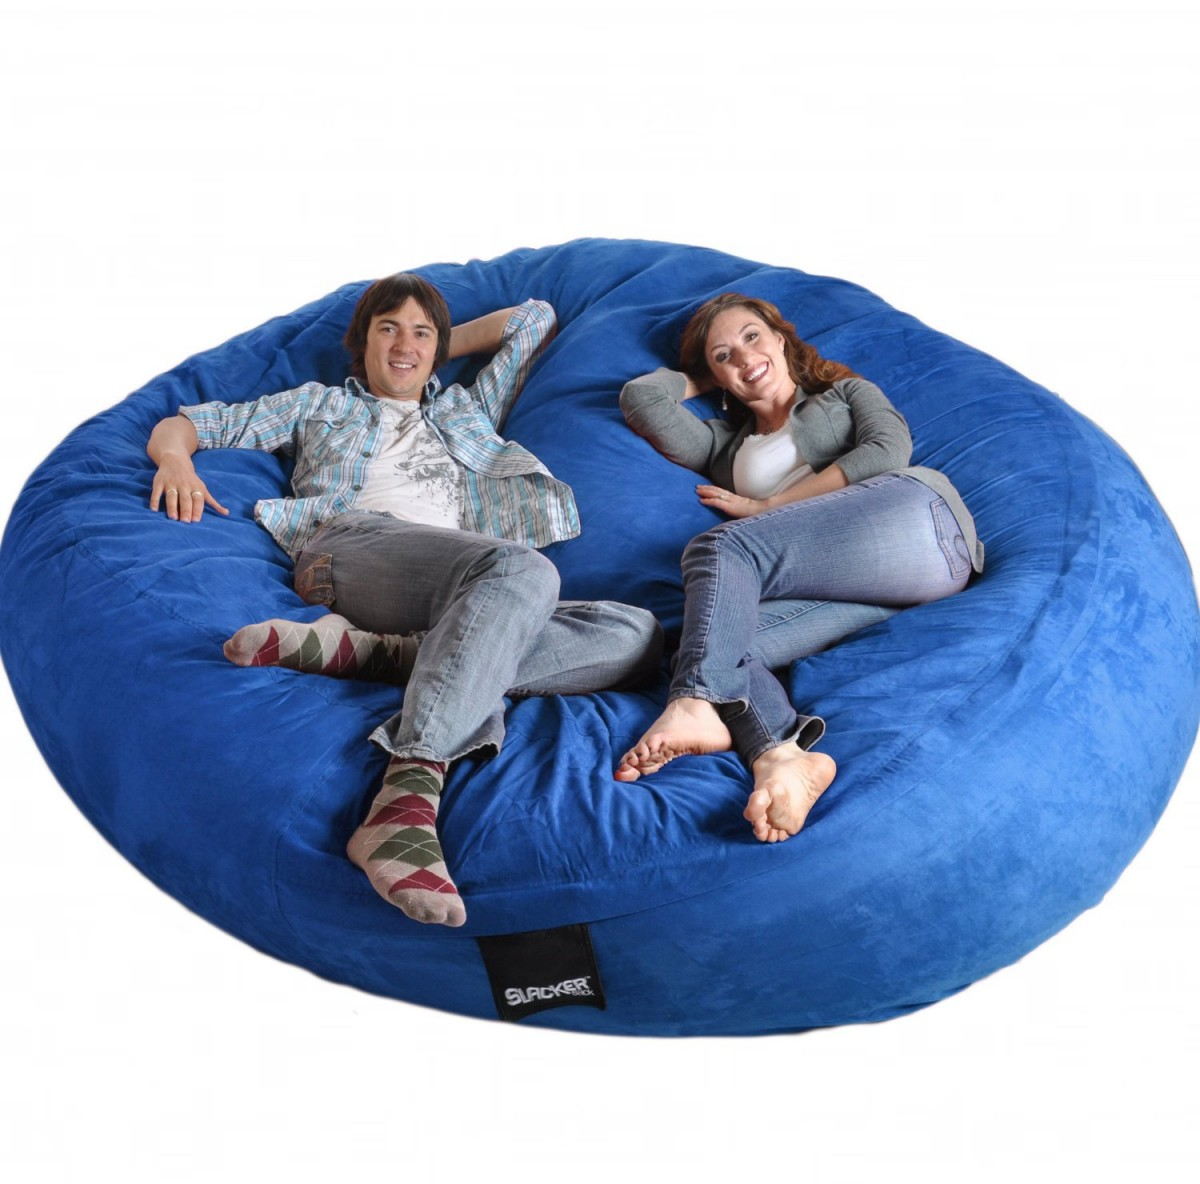 Choosing The Bean Bag Chair For Your Living Room Spread Health Foods